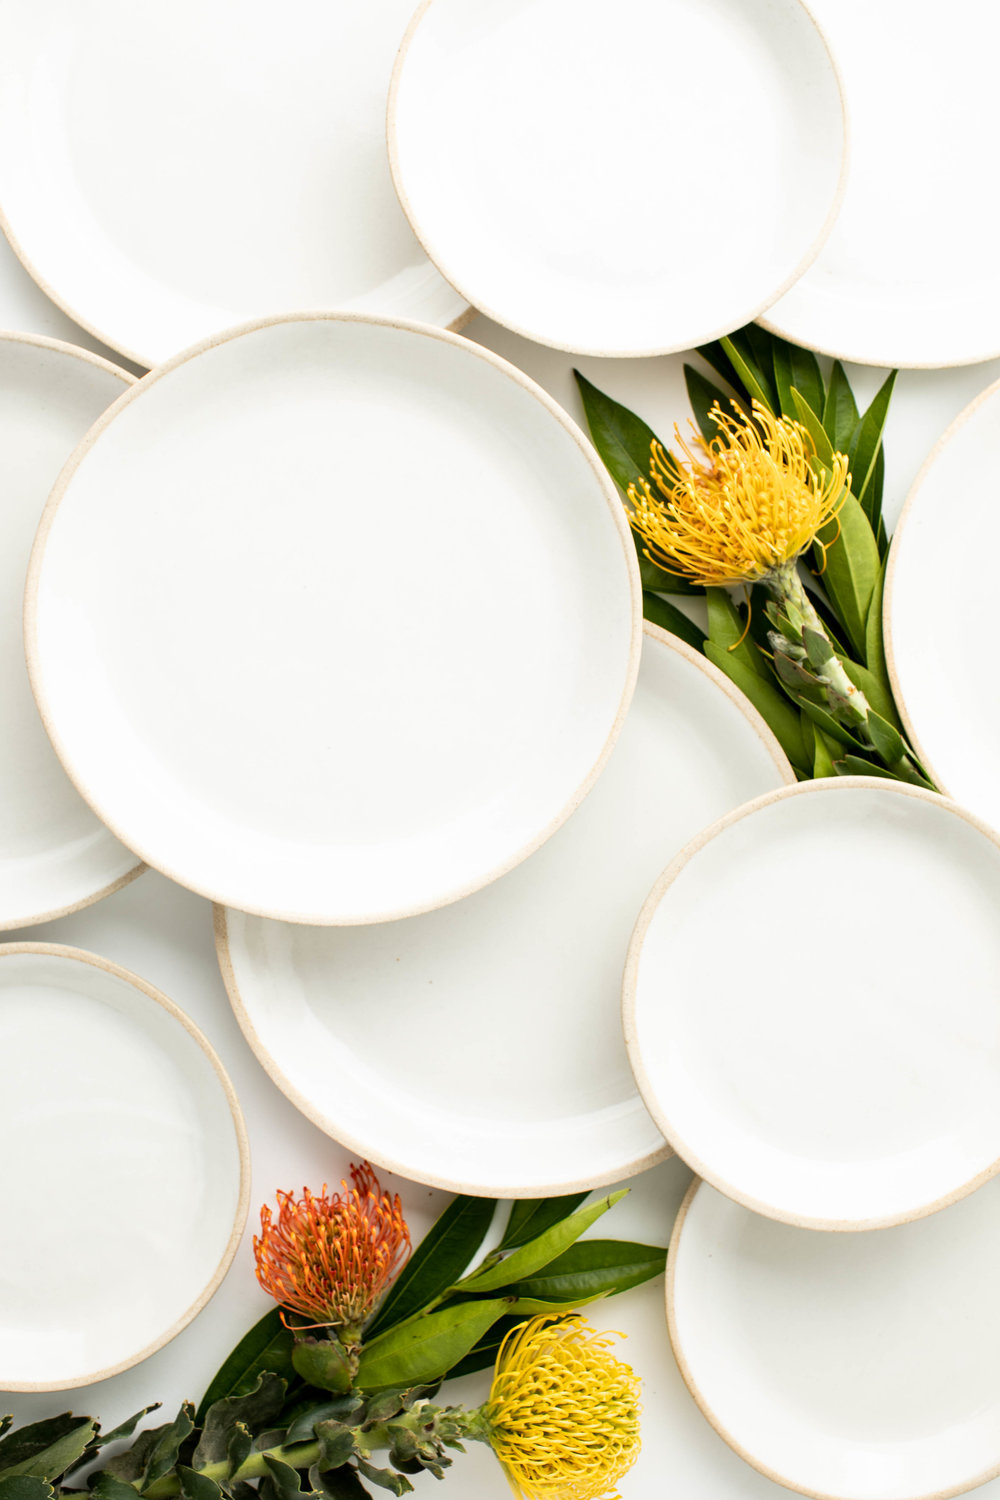 Assorted Minimal Dinner and Salad Plates -  SAND